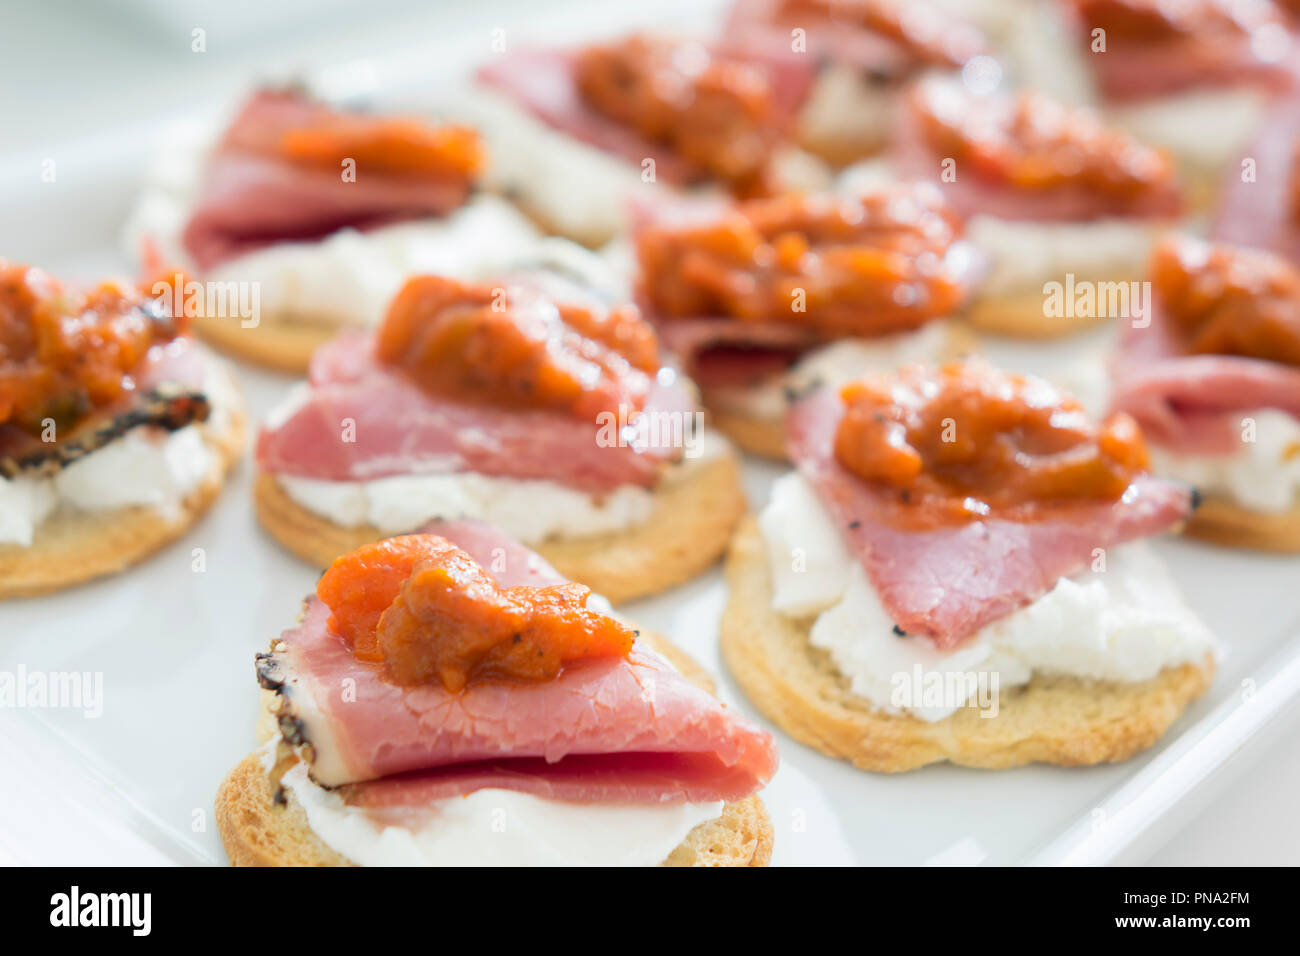 canape with smoked meat cheese and tomato sauce stock image - Mini Canape